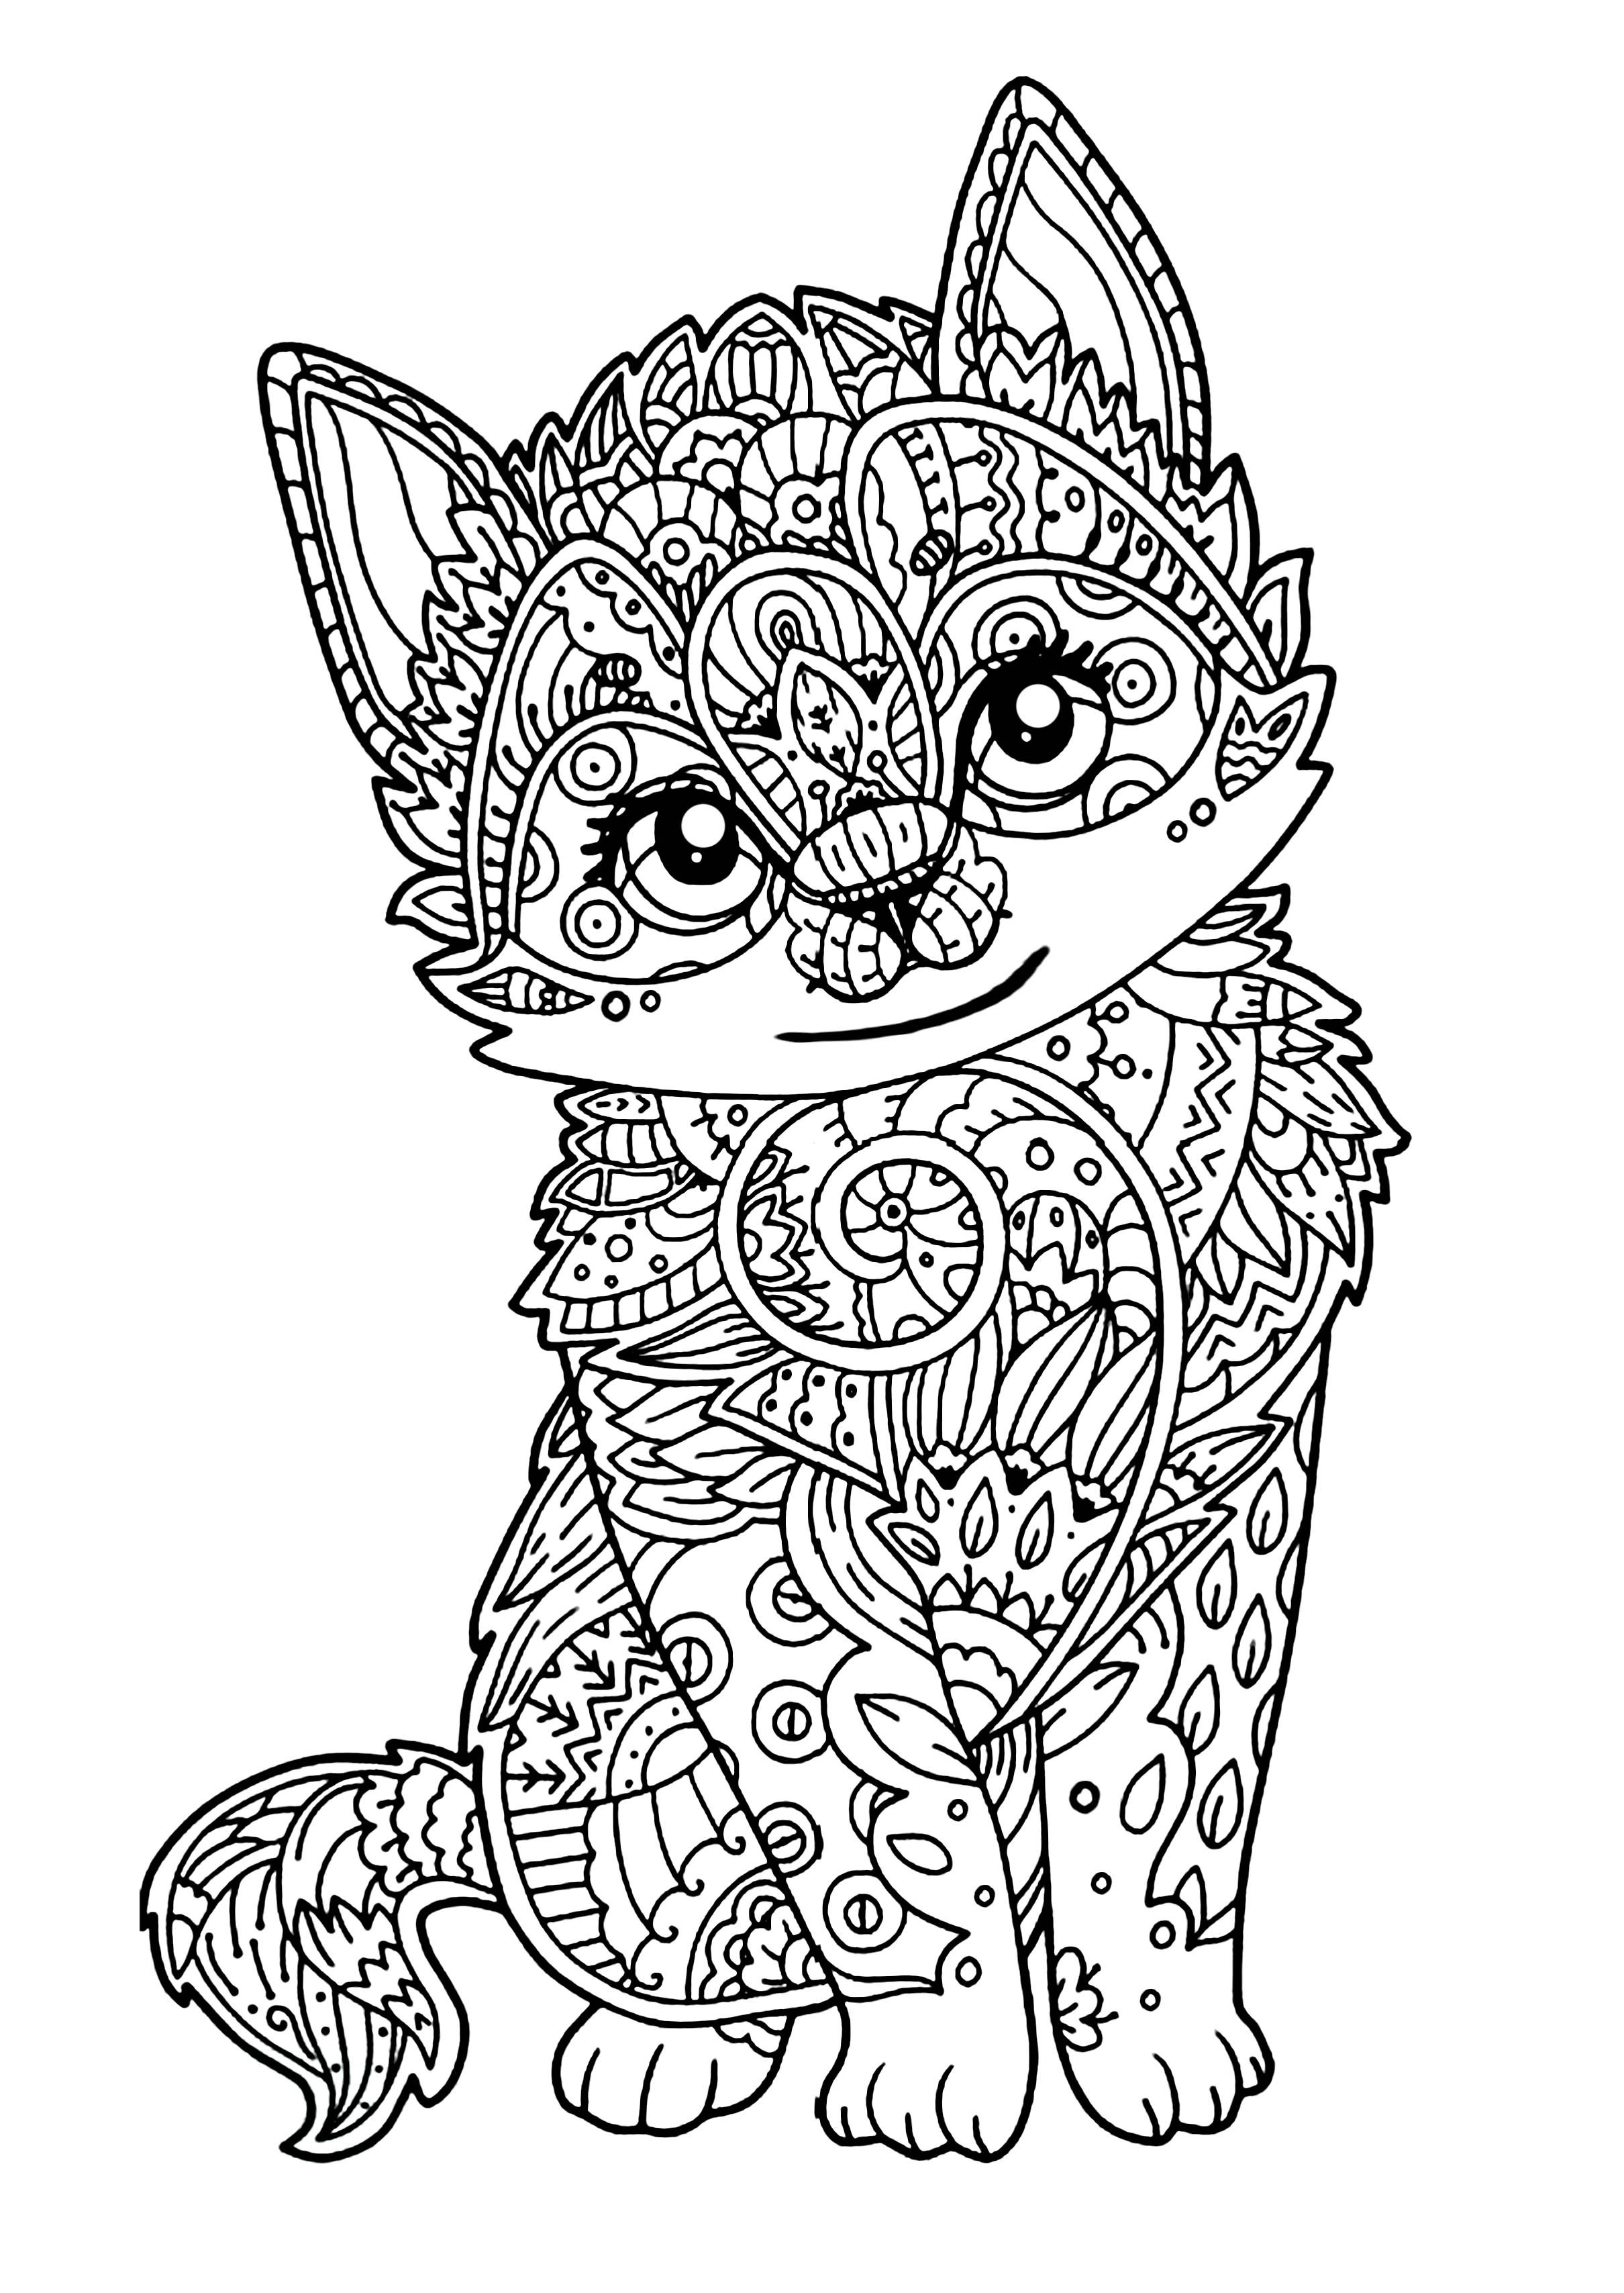 Cats Adult Coloring Book  Cute kitten Cats Adult Coloring Pages